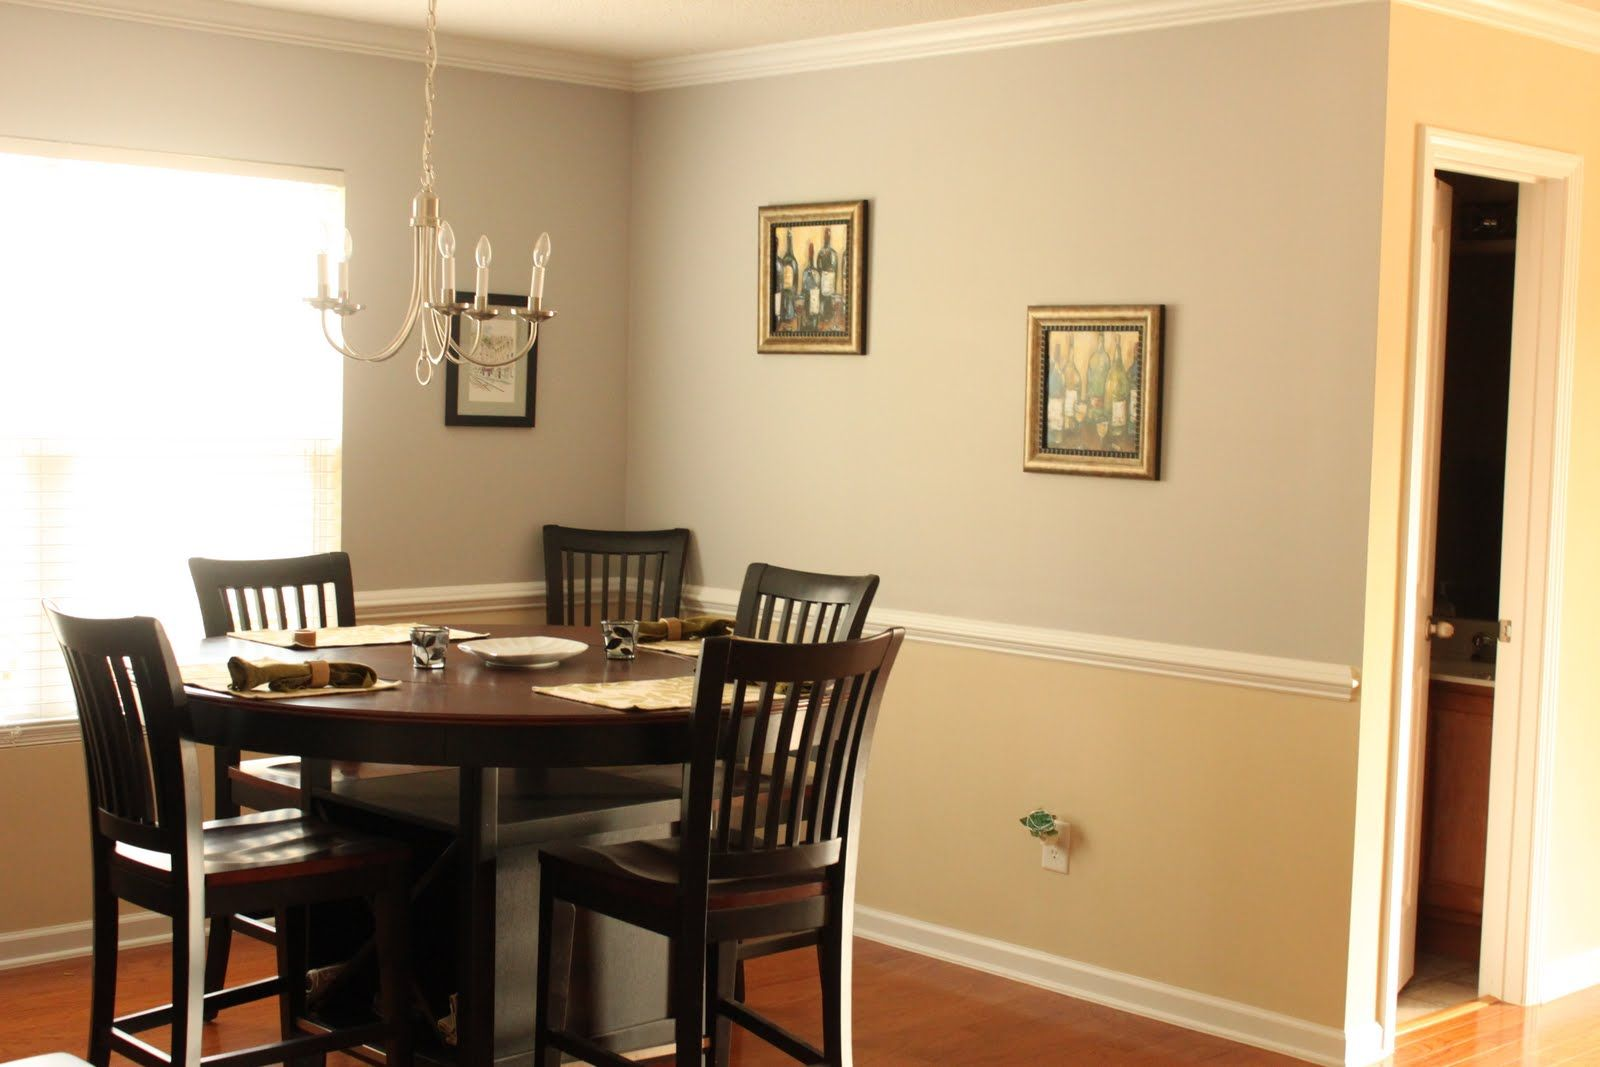 Gray and beige scheme best color to paint a interior room for dining room decorating with simple Paint colors in rooms